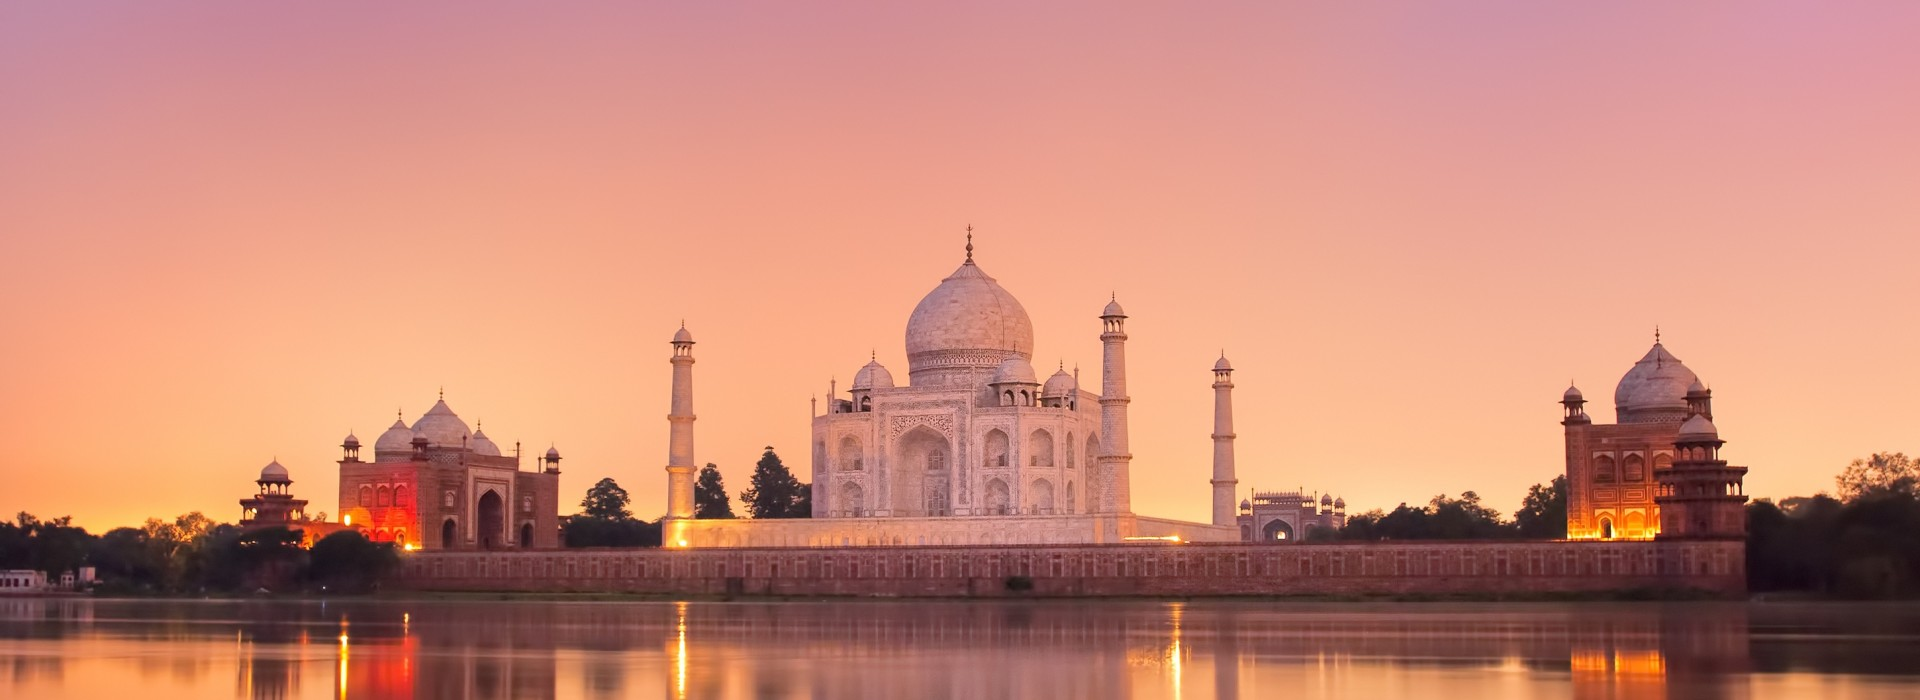 Special interests and hobbies Tours in Delhi & Golden Triangle